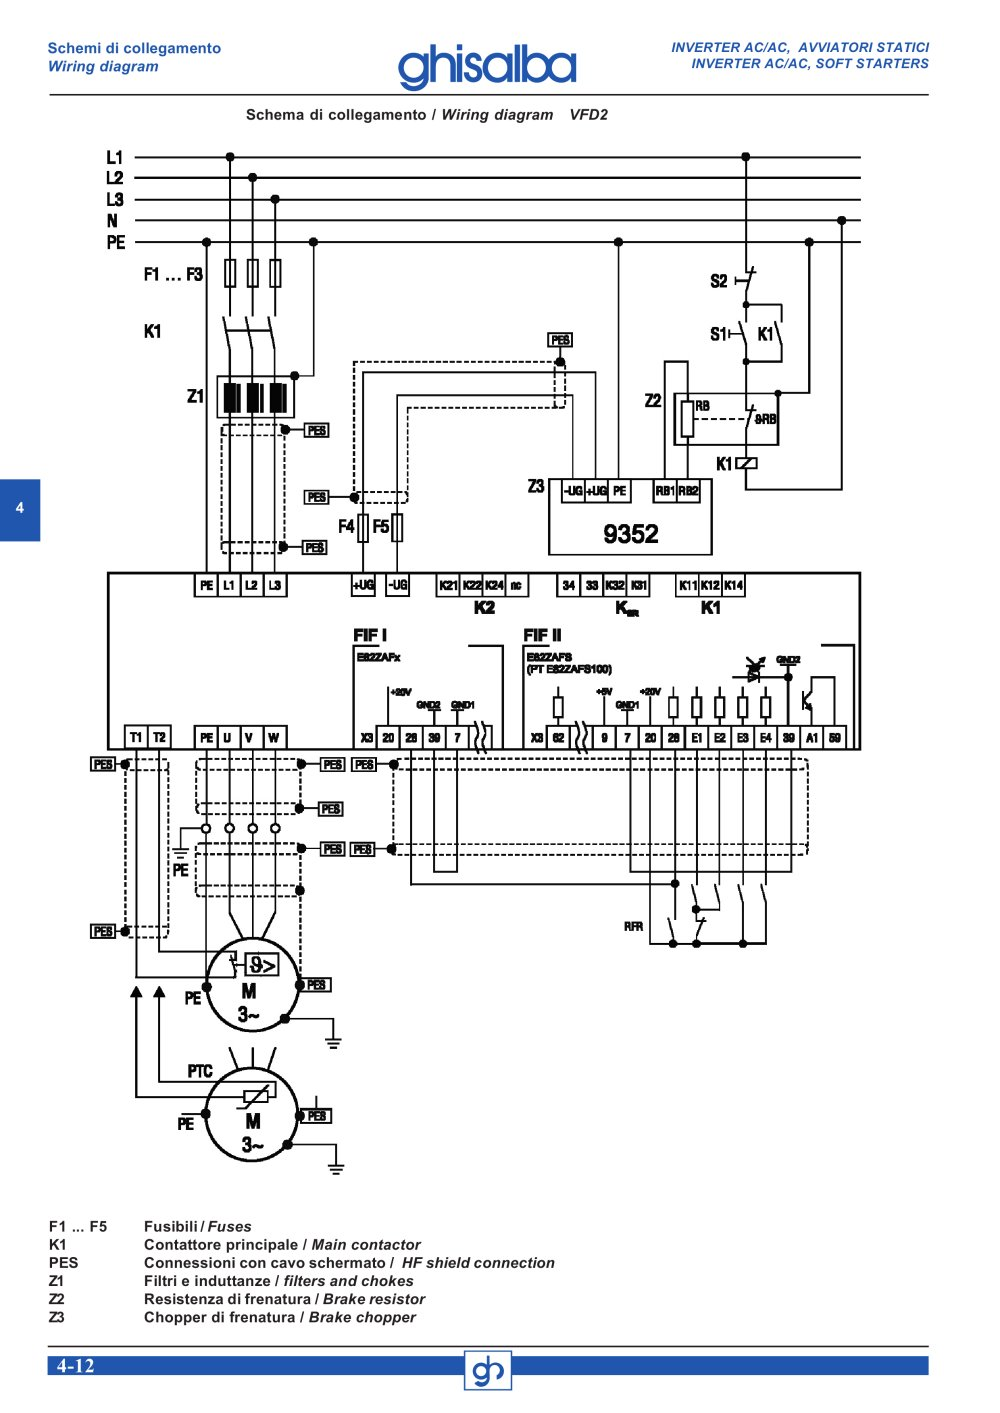 Soft Starter Wiring Diagram Schneider 37 Images Magnetek Power Converter 3200 Inverter Starters 135447 10bresized6652c940 Abb Circuit Efcaviation Com